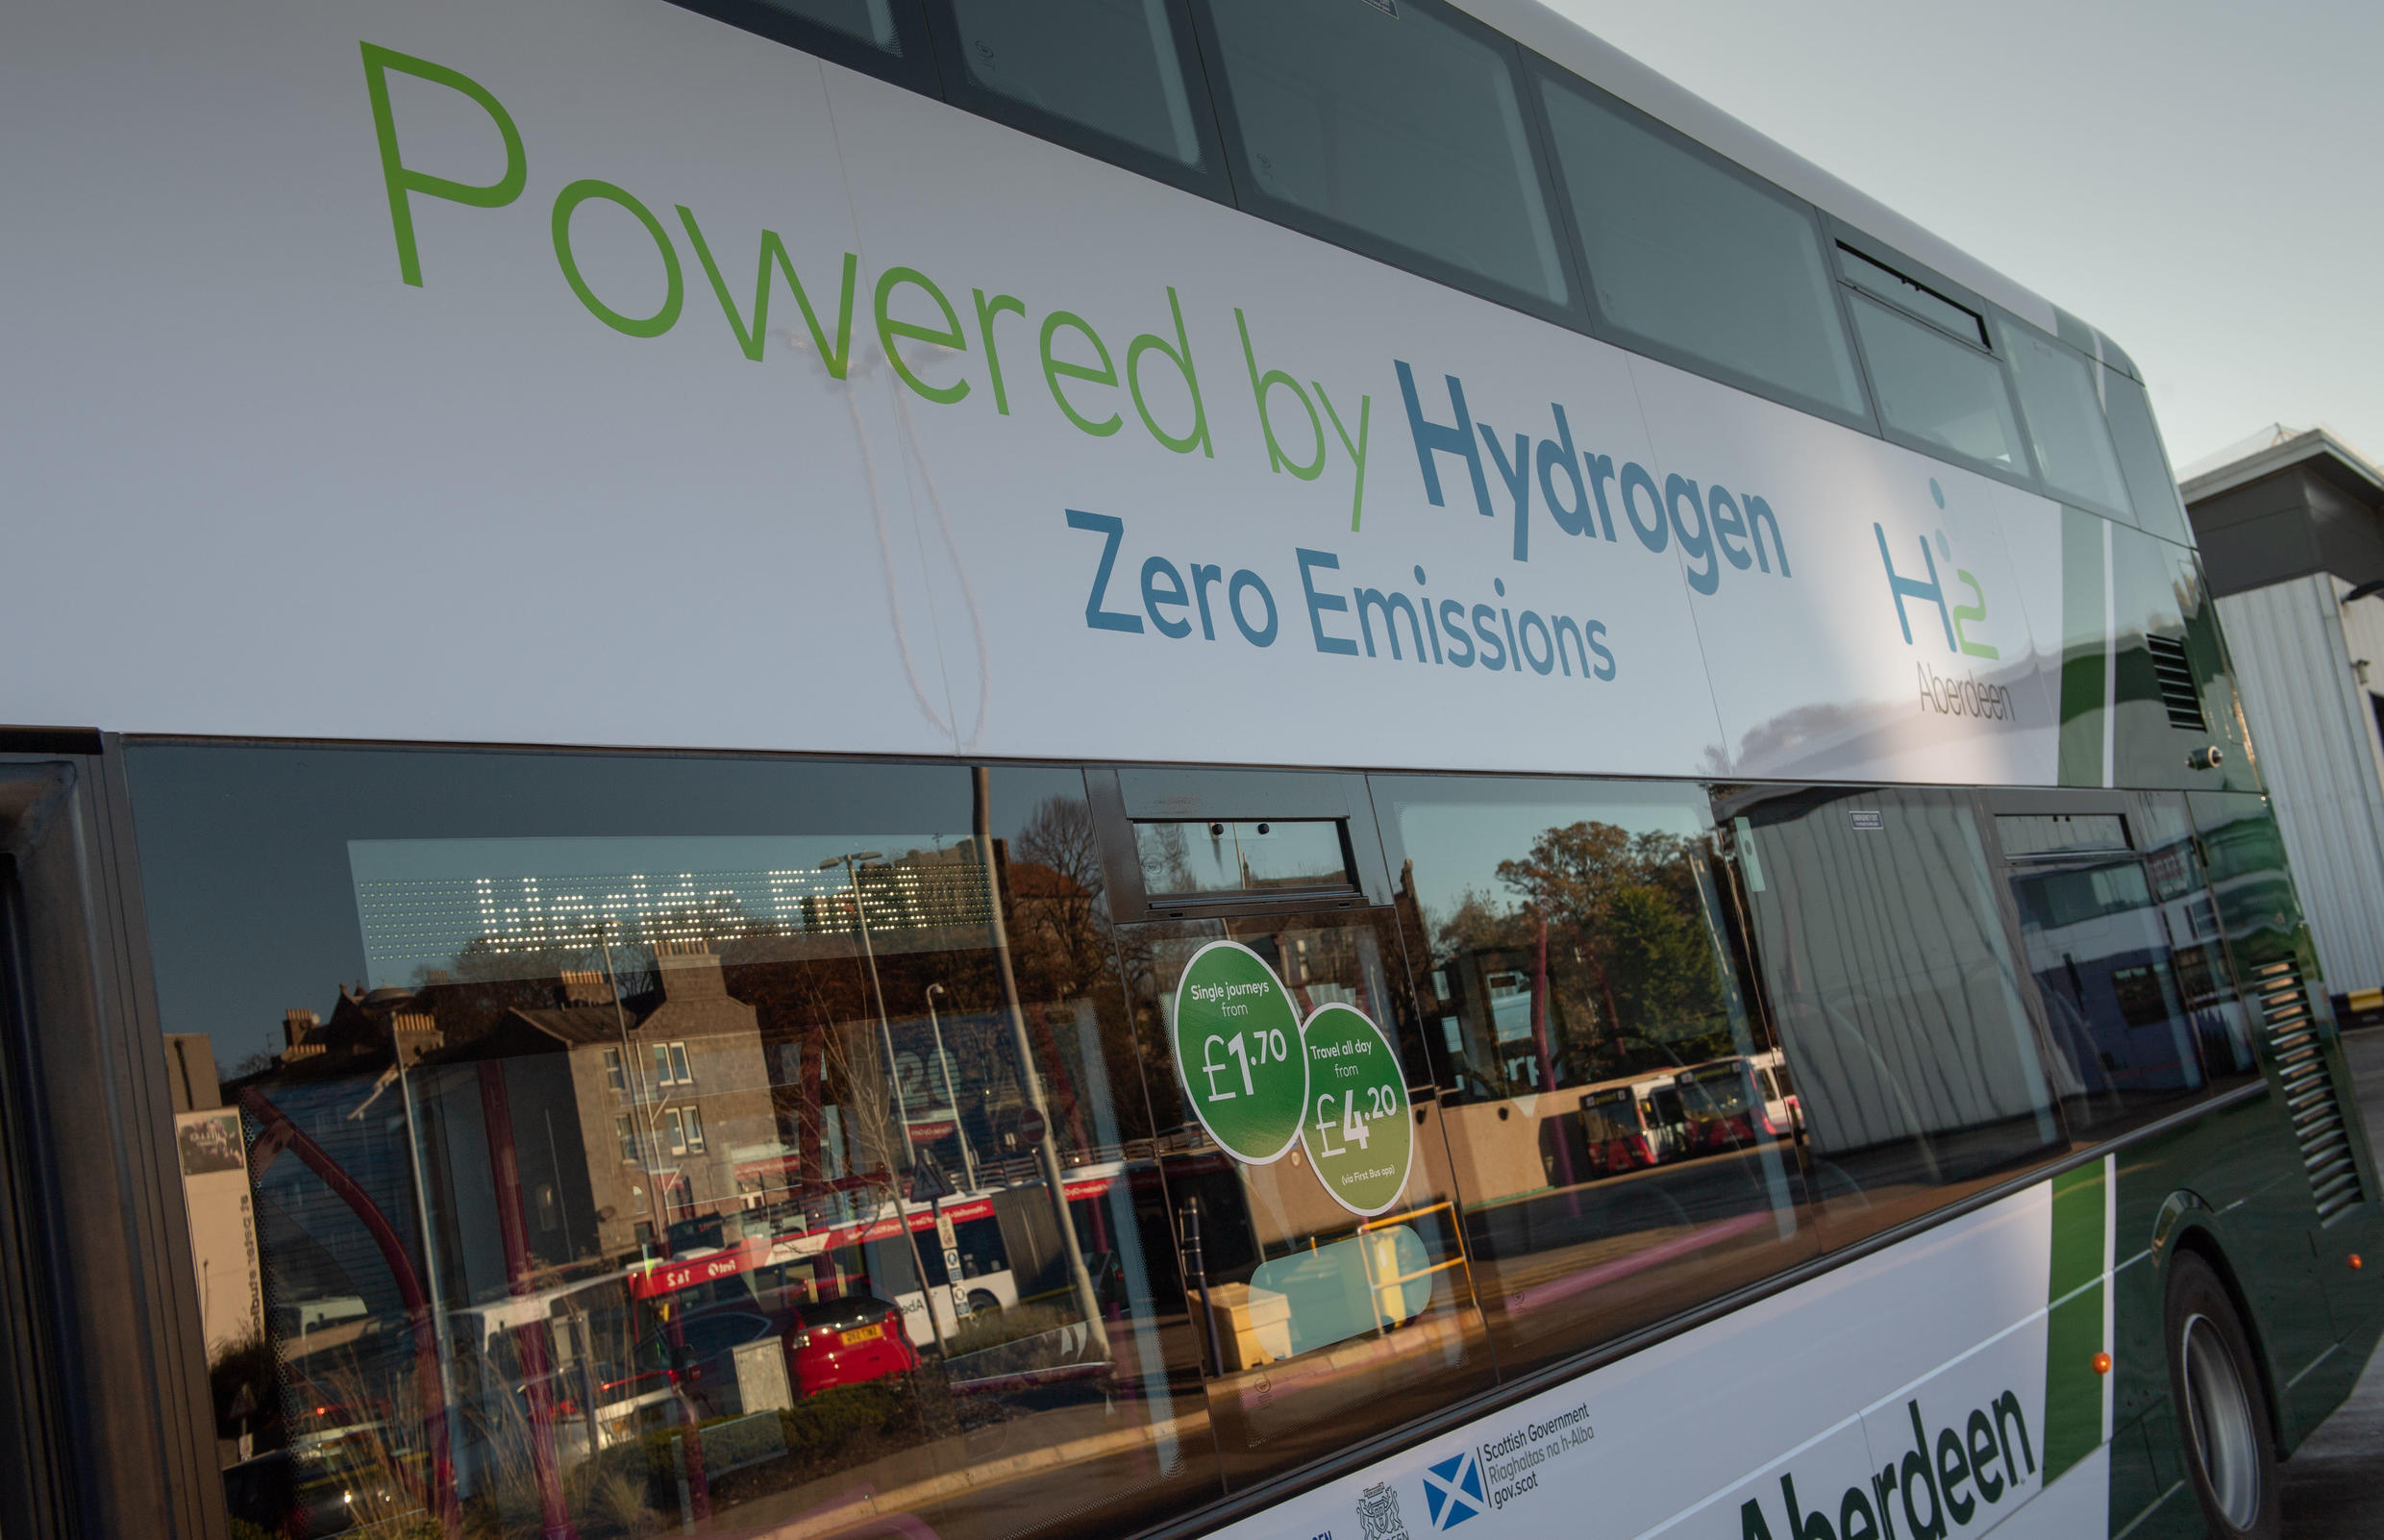 Hydrogen has many uses - including transport - but attention is turning to producing it in a greener way